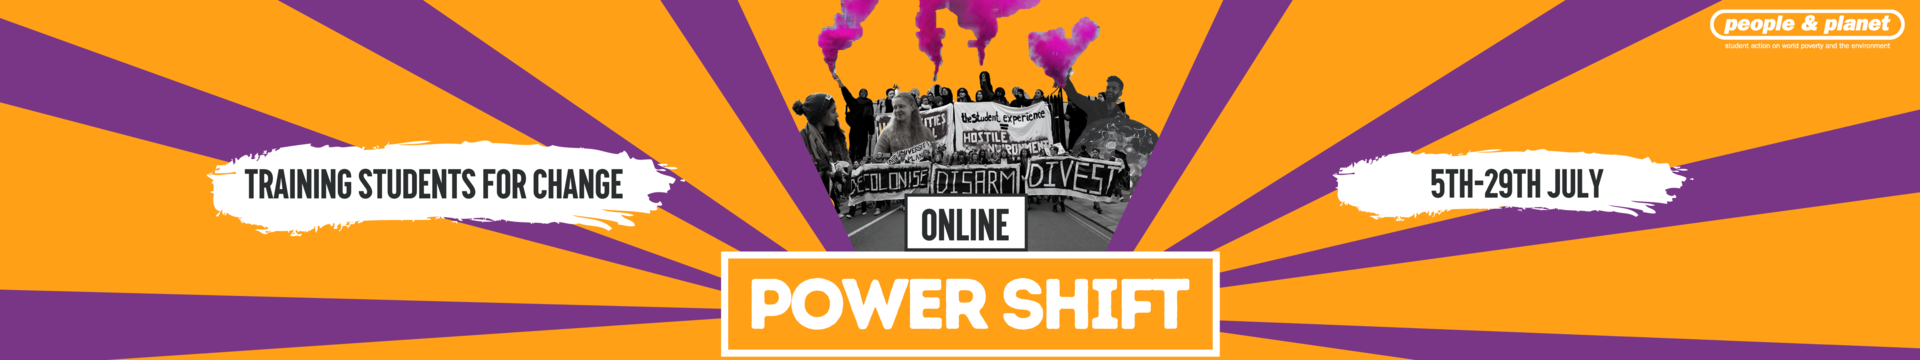 Power Shift Online: Training Students for Change. 5 - 29 July